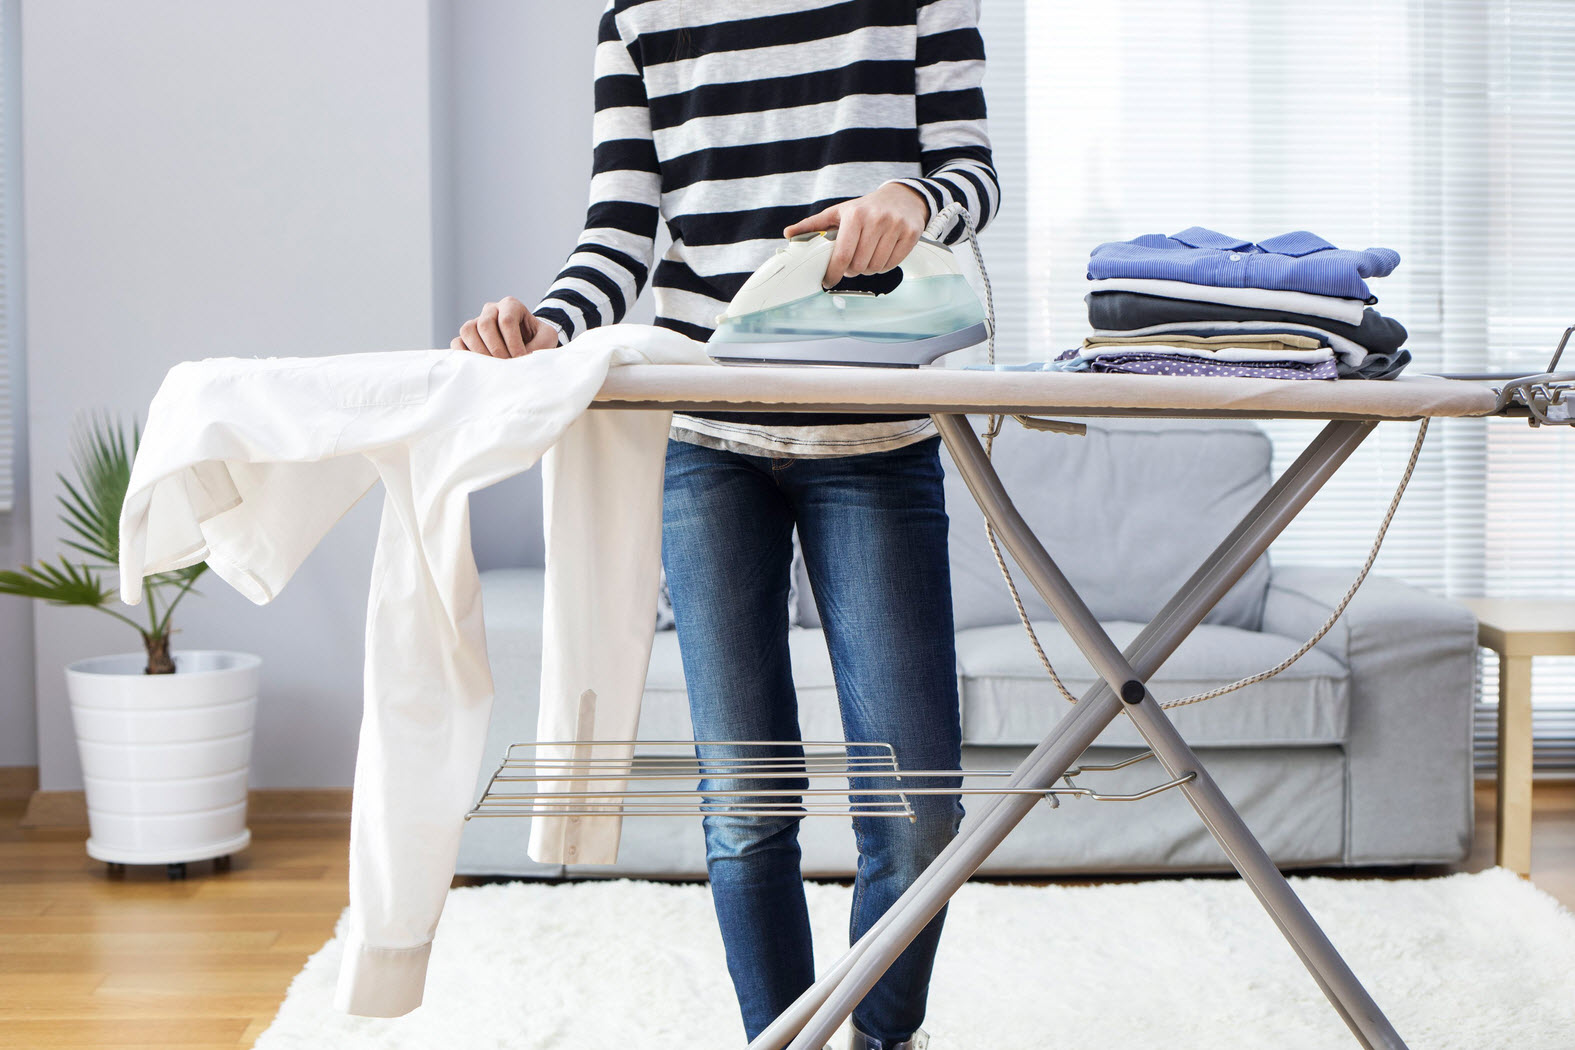 woman ironing on board